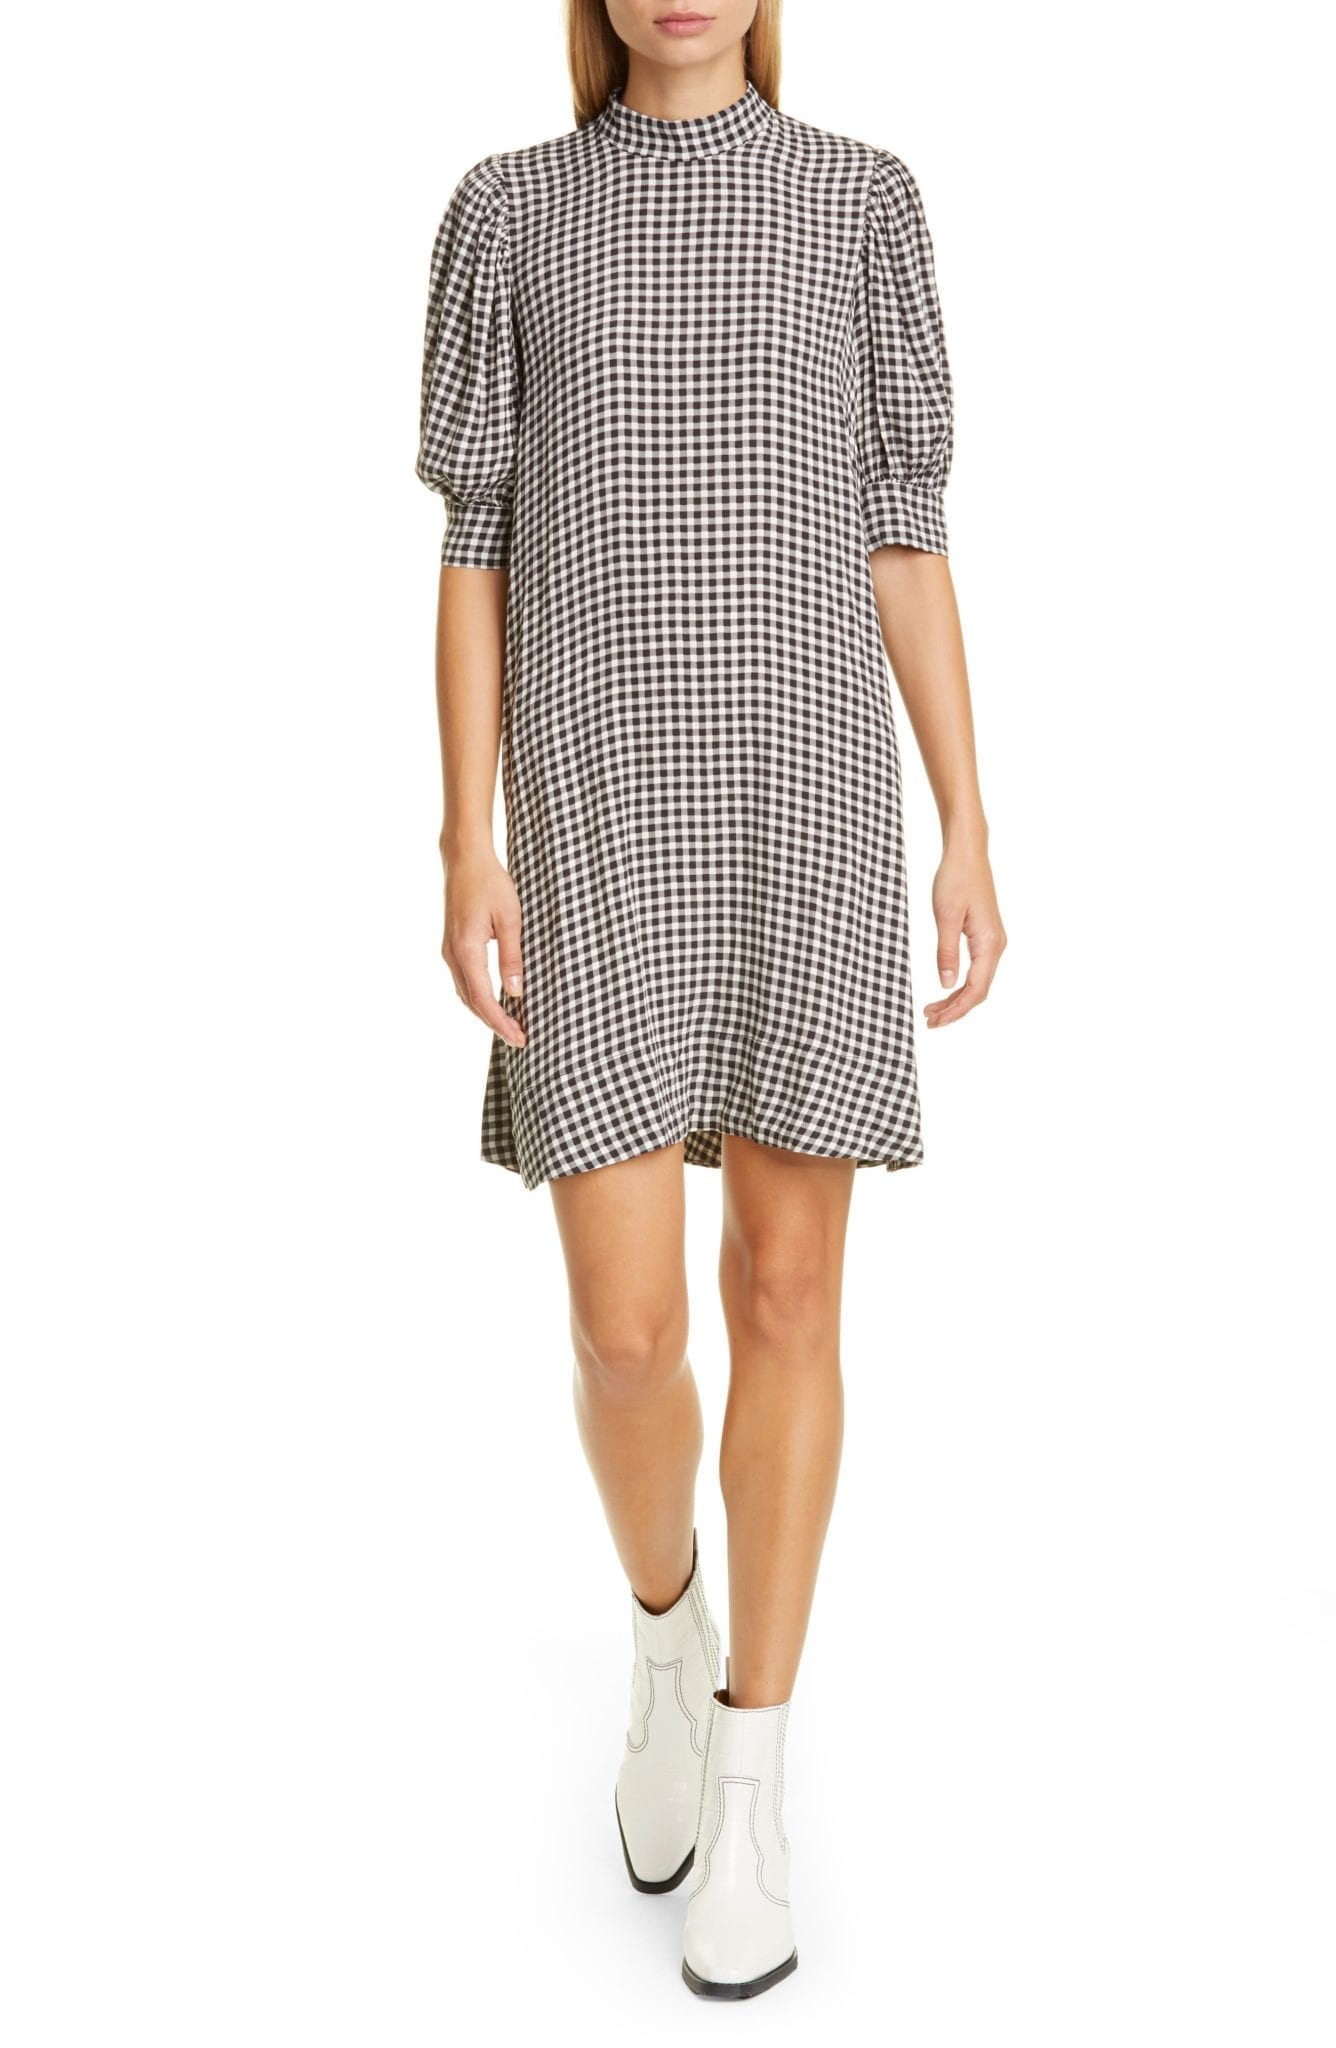 GANNI Gingham Print Crepe Dress